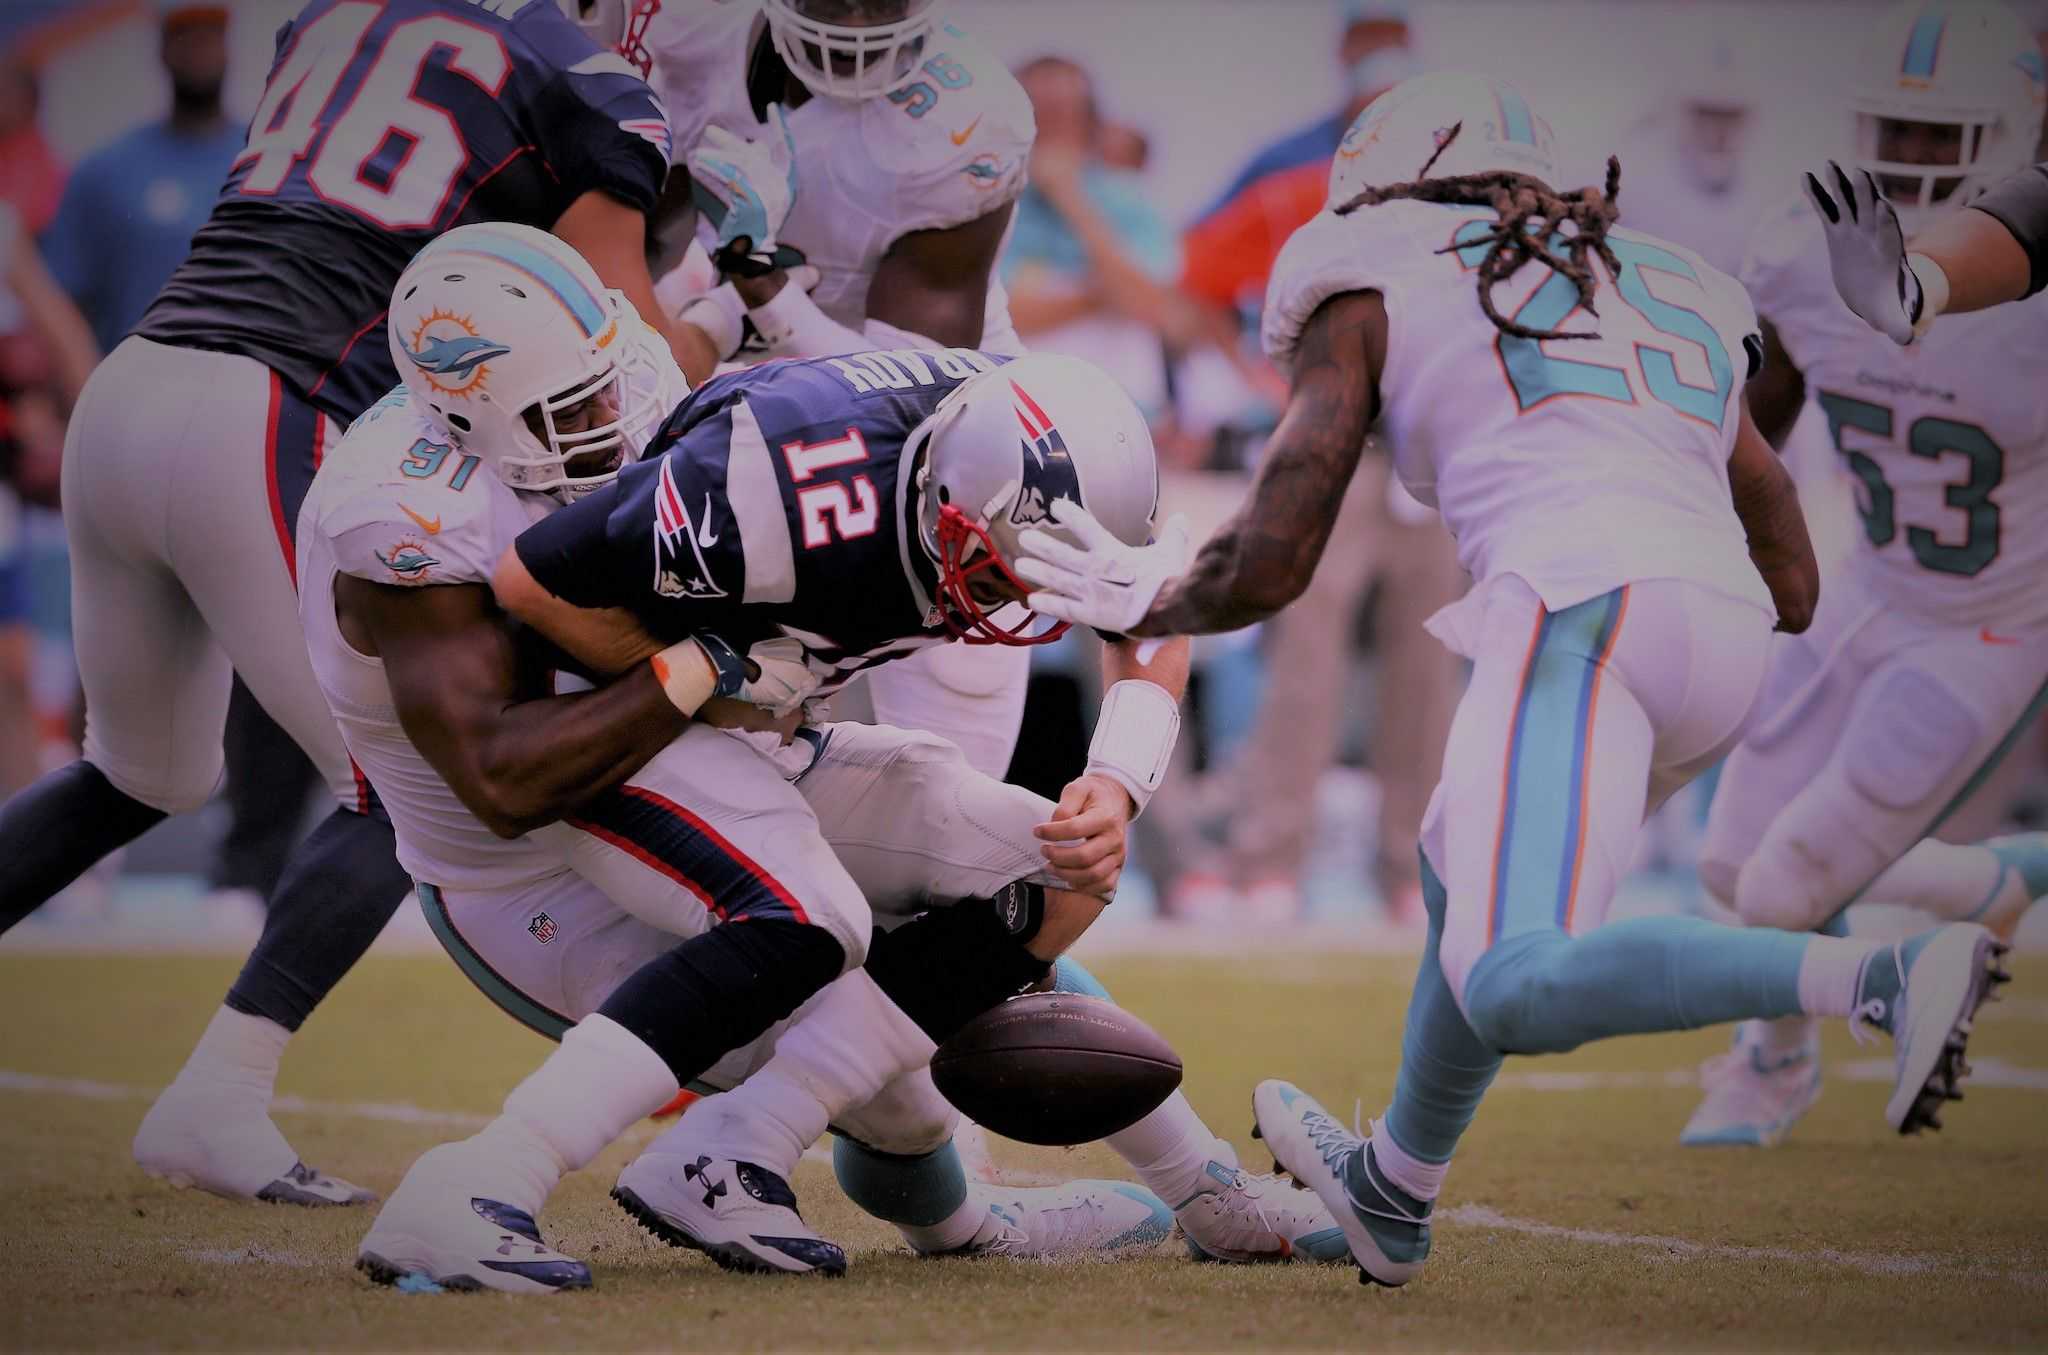 Miami Dolphins Vs New England Patriots Live Stream Watch Usa Football Online Game Updates Schedule New England